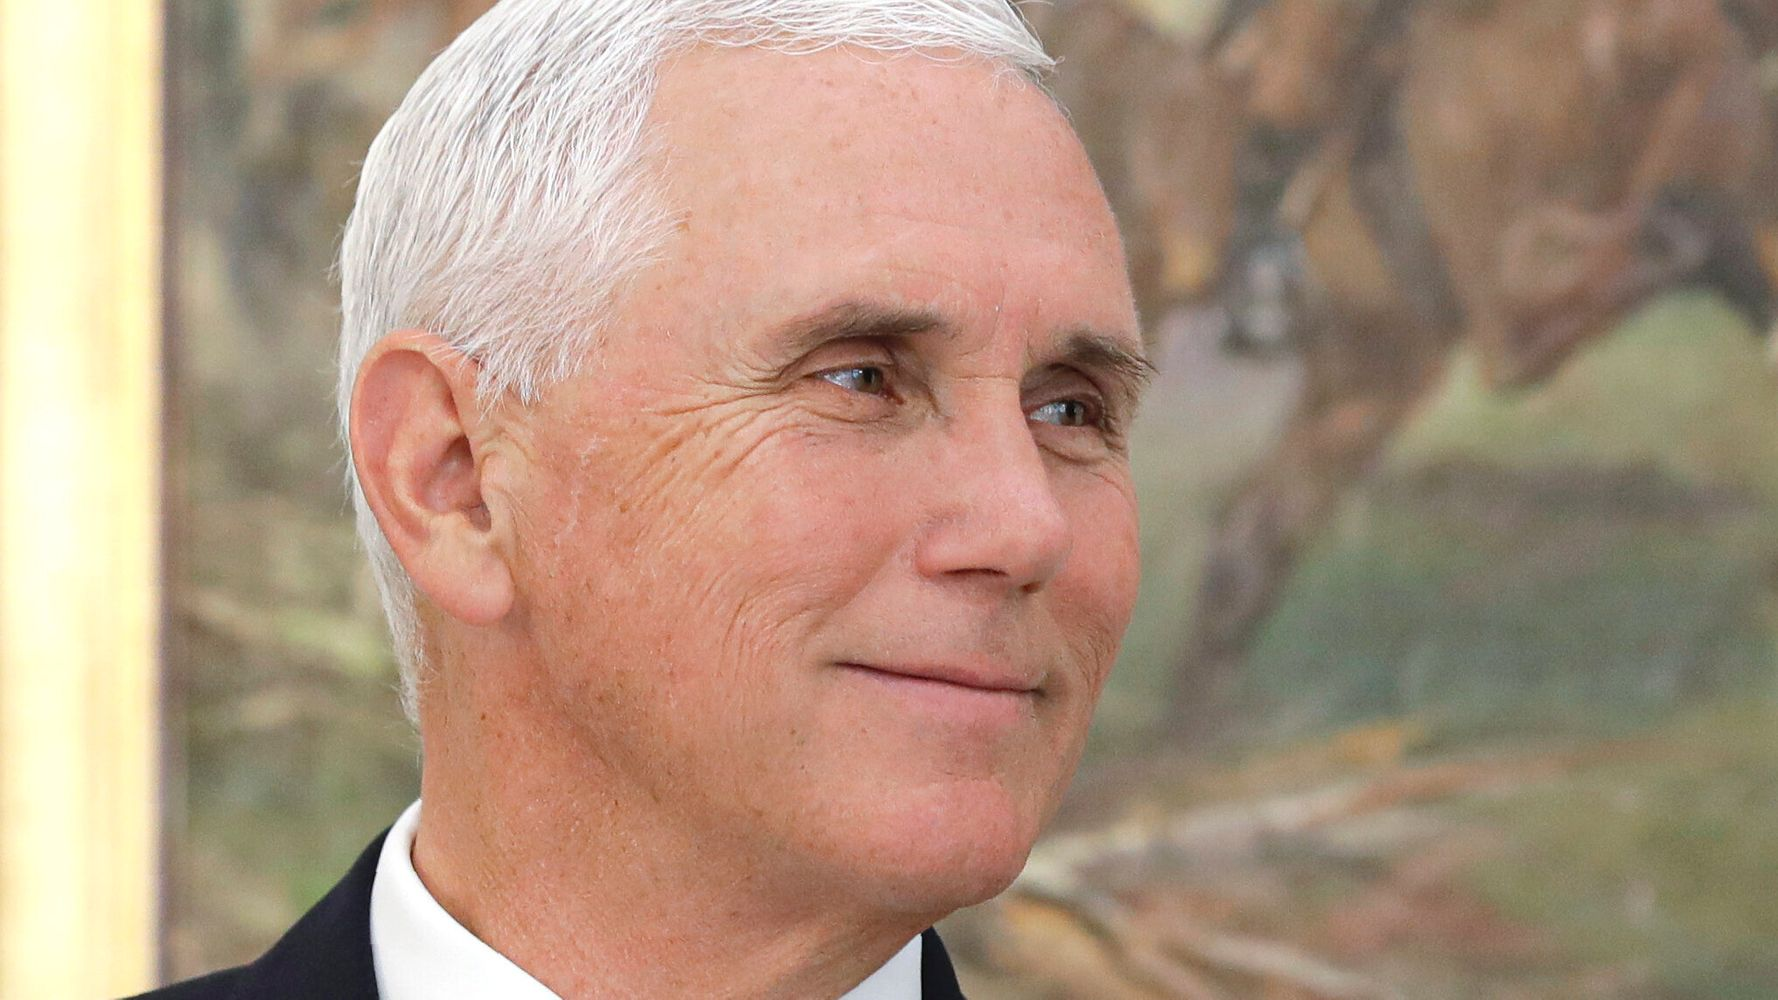 Westlake Legal Group 5d6e1ed0250000550001c153 WH Spokesperson Argues Pence Isn't Anti-Gay In The Worst Possible Way